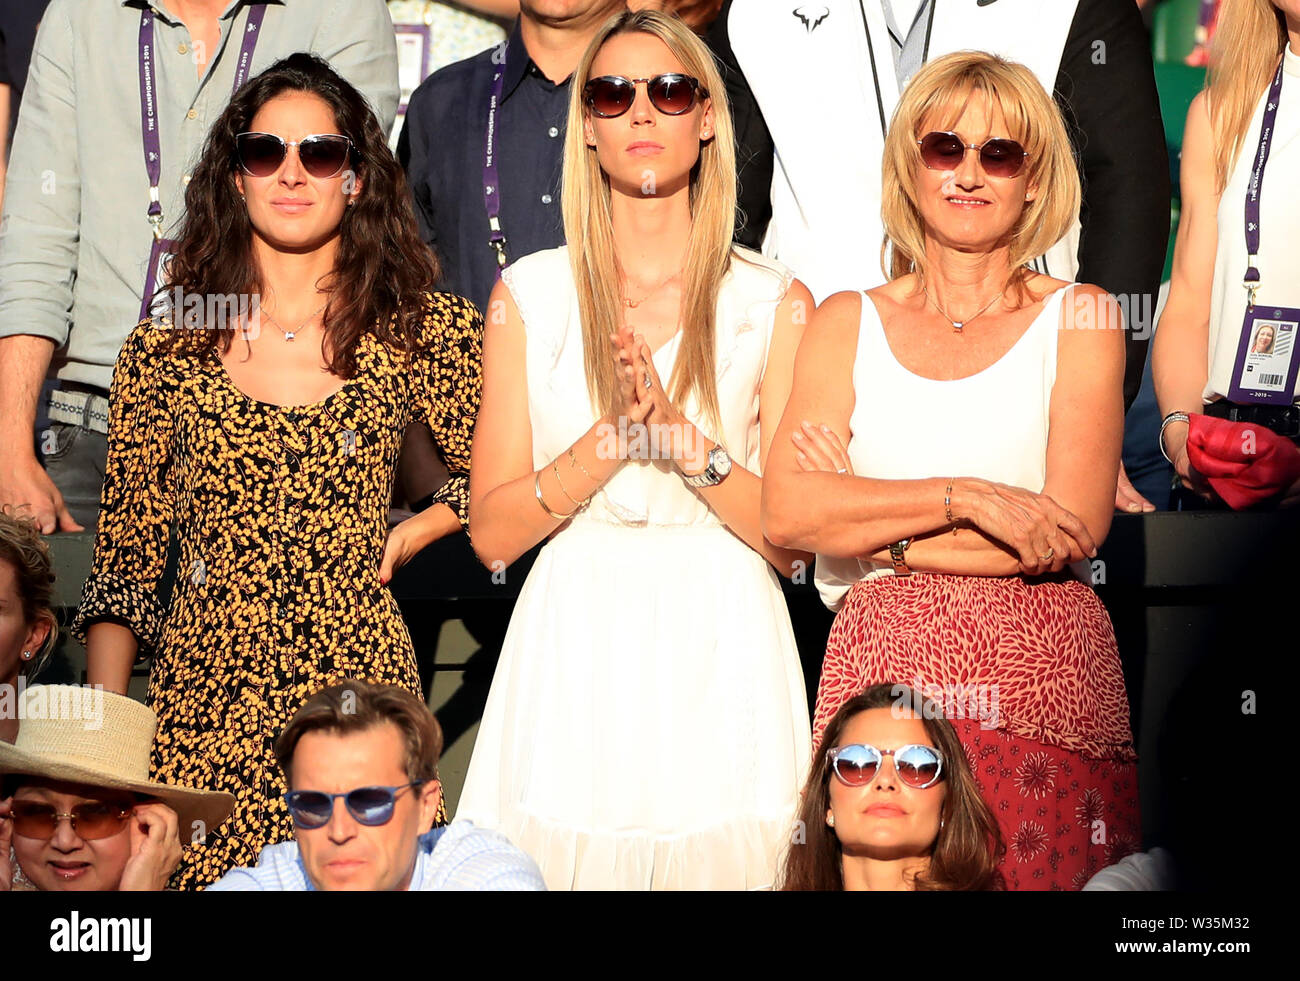 Rafael Nadal And Girlfriend High Resolution Stock Photography And Images Alamy